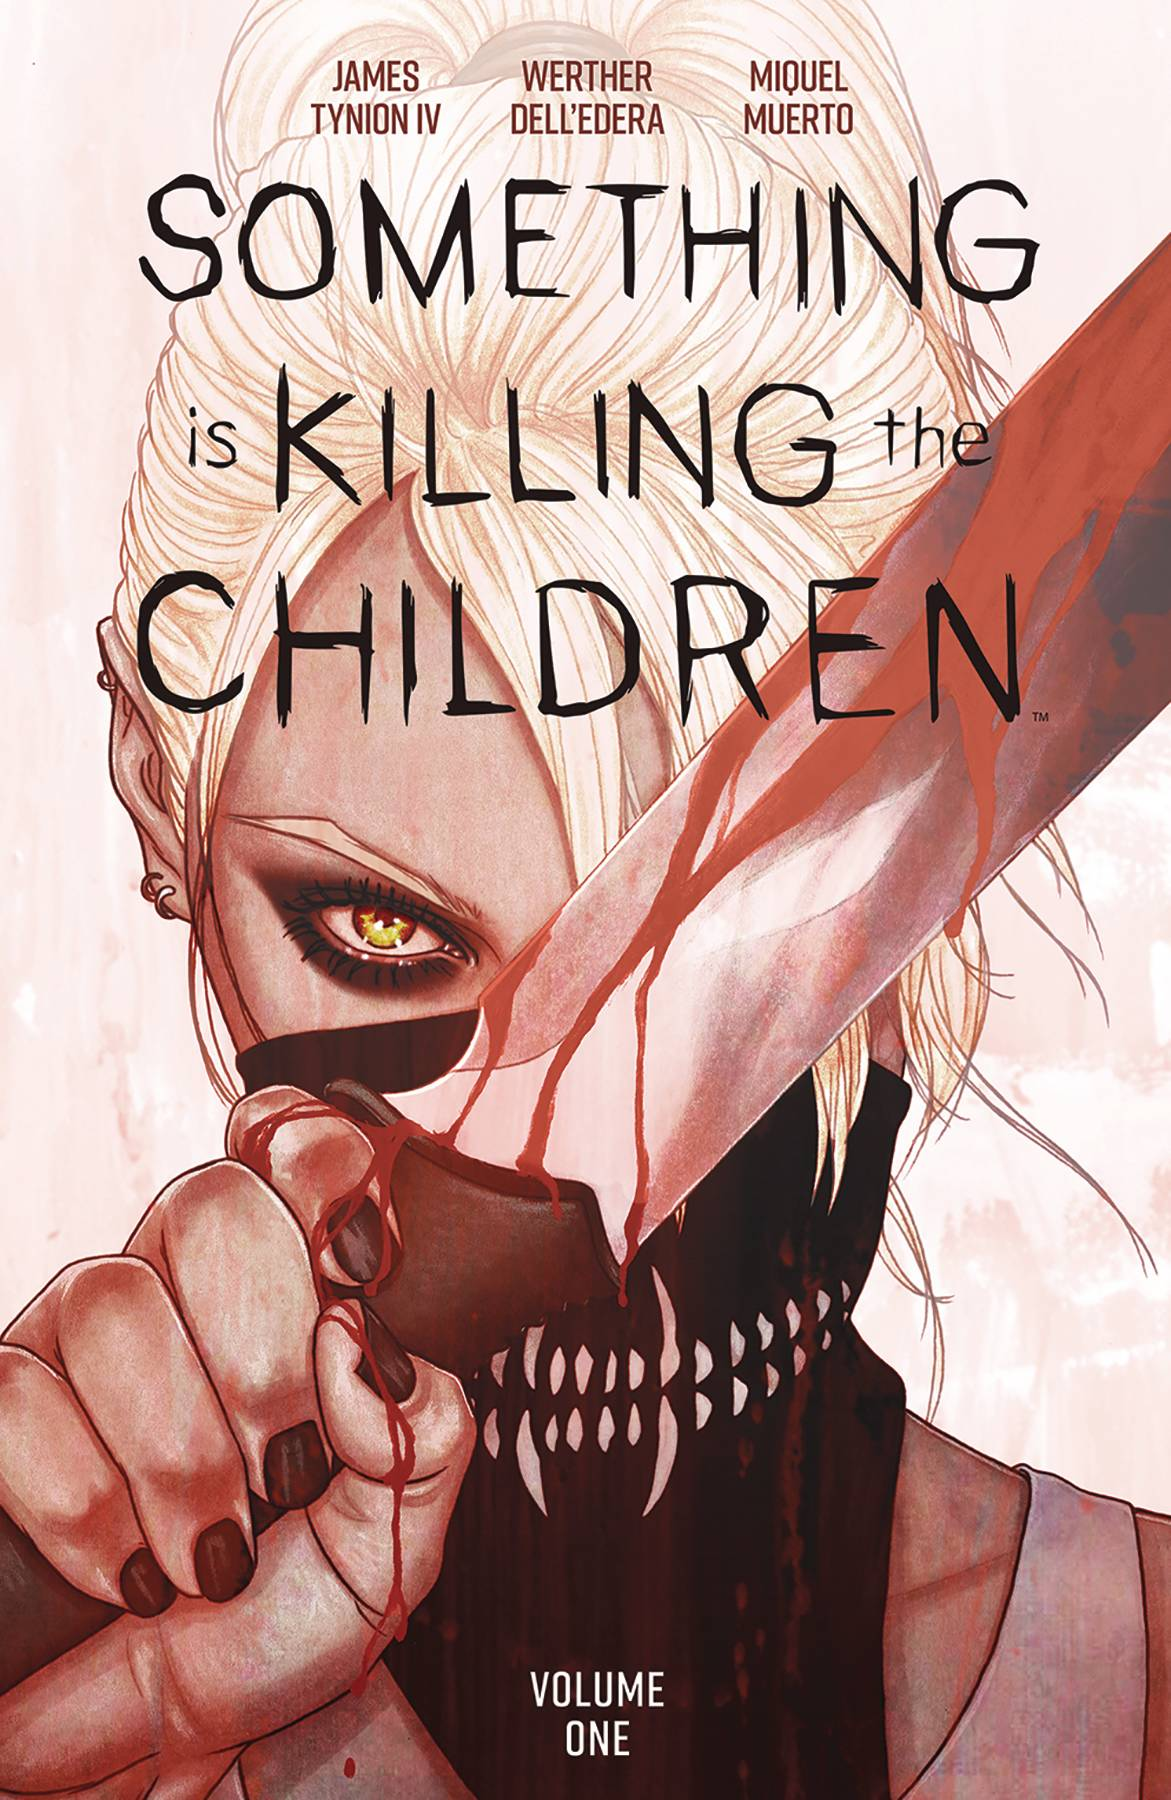 SOMETHING IS KILLING CHILDREN TP VOL 01 - DISCOVER NOW